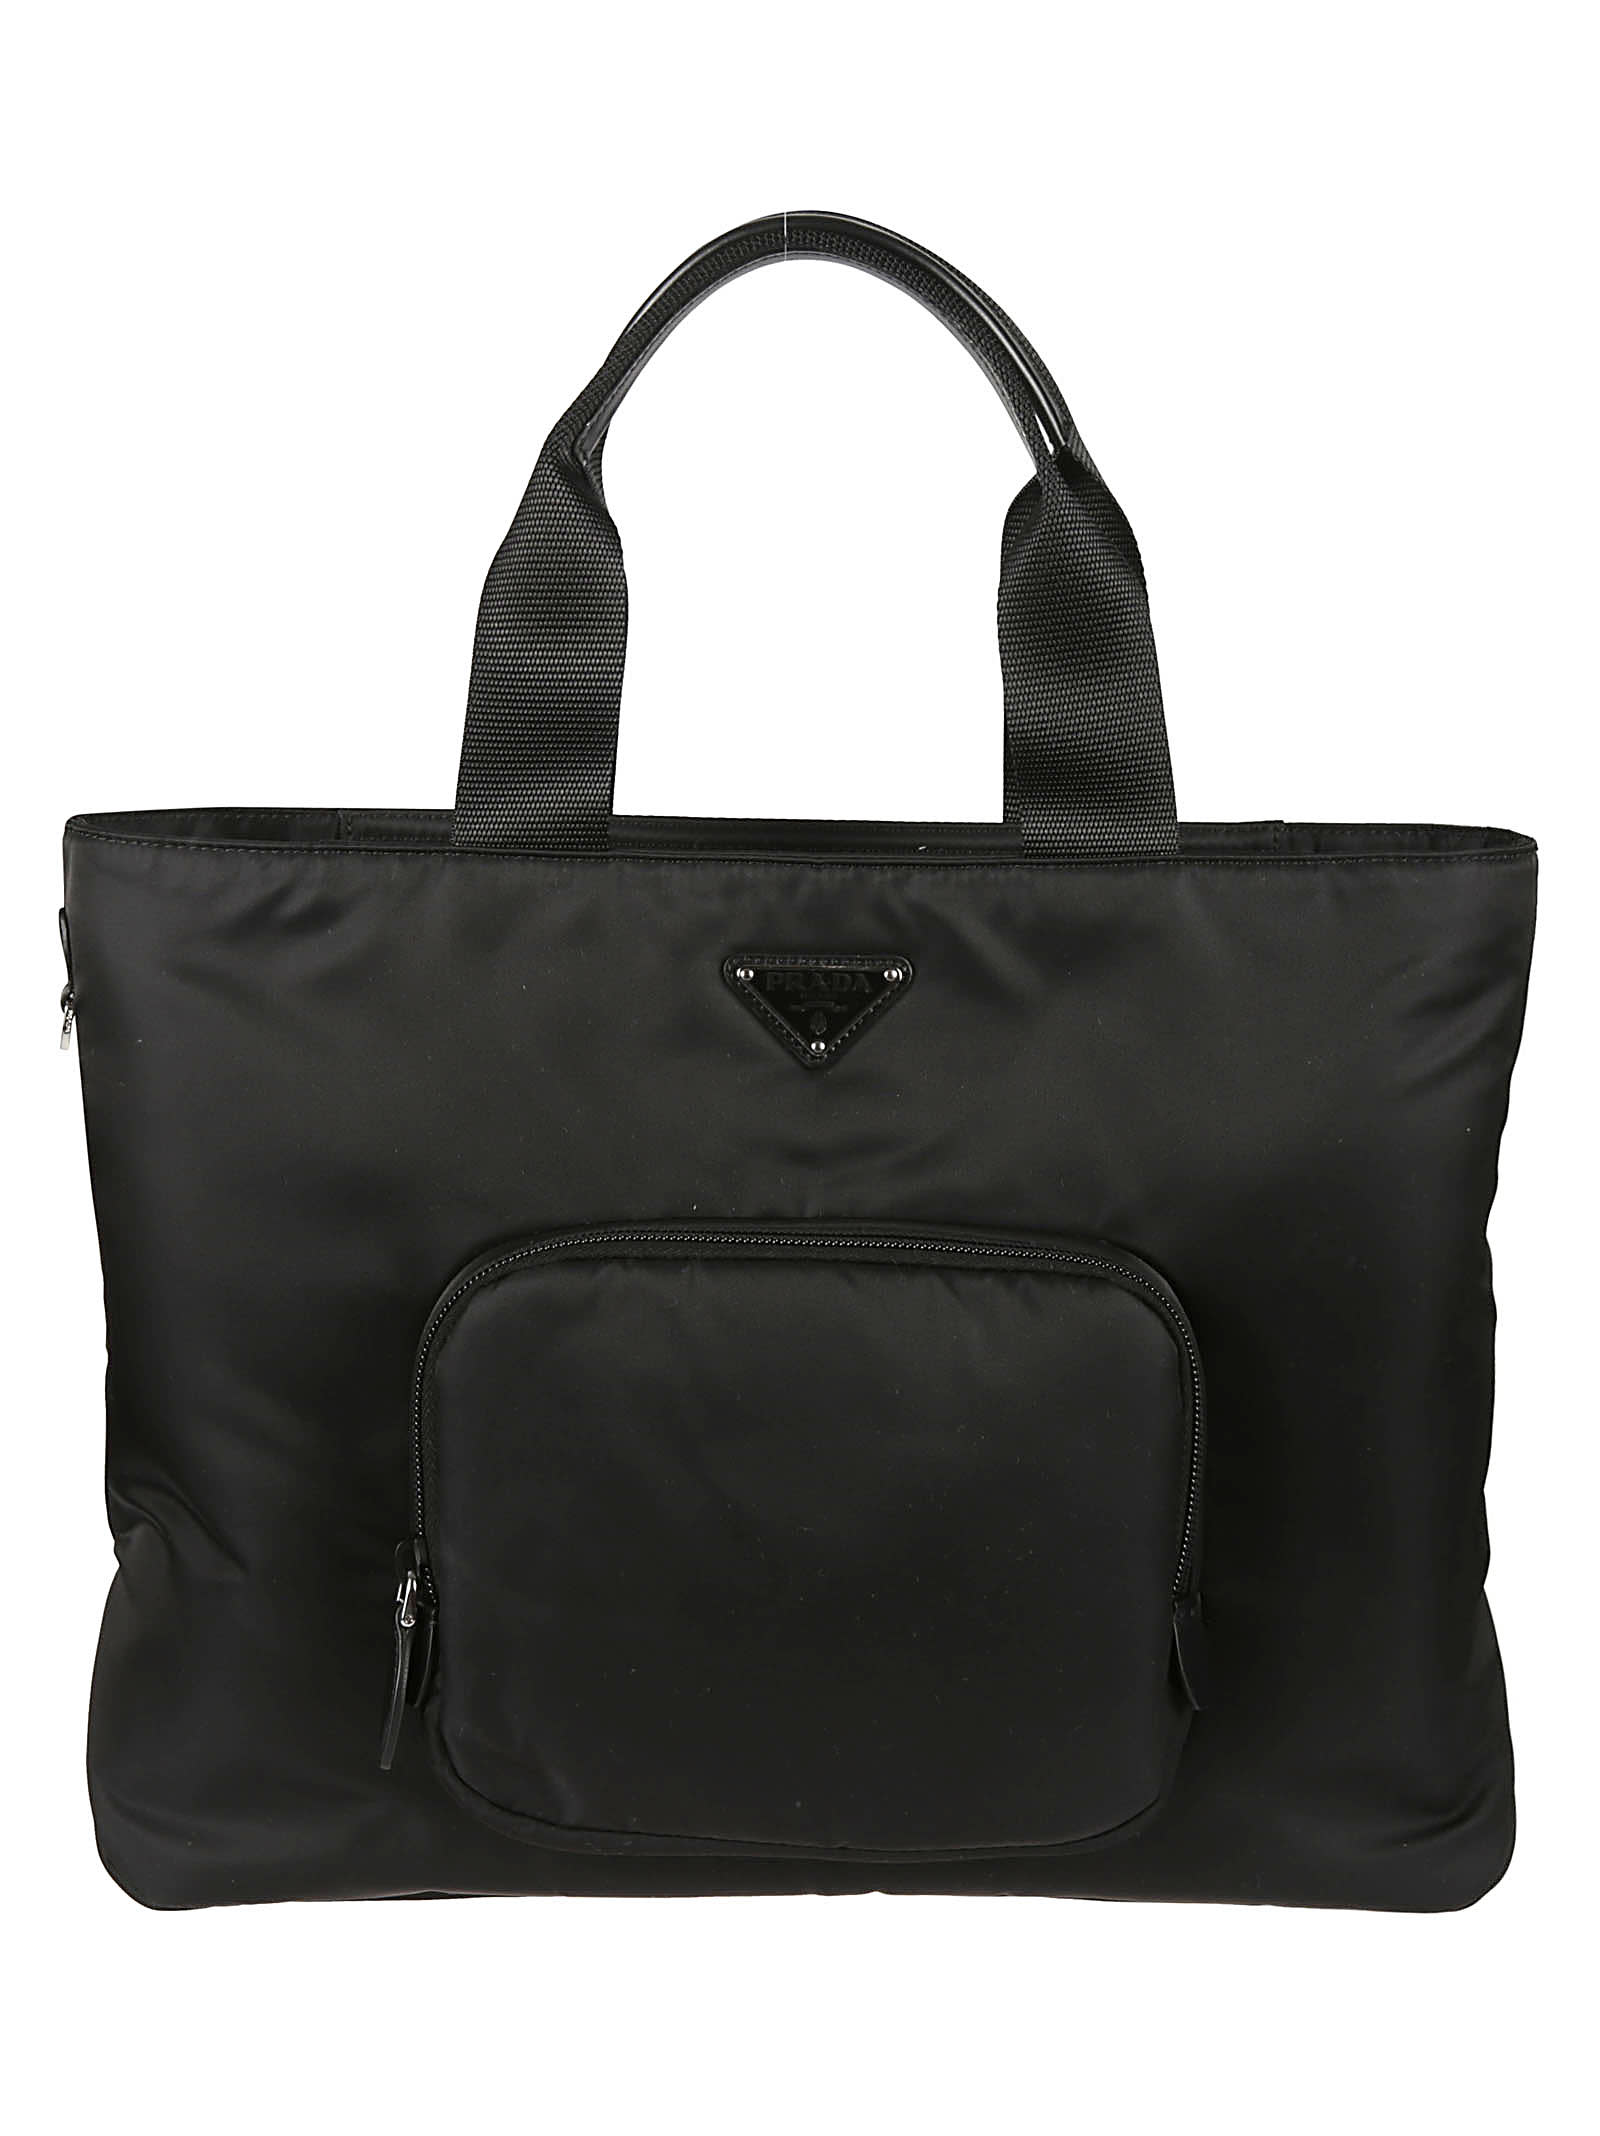 Prada Patched Tote